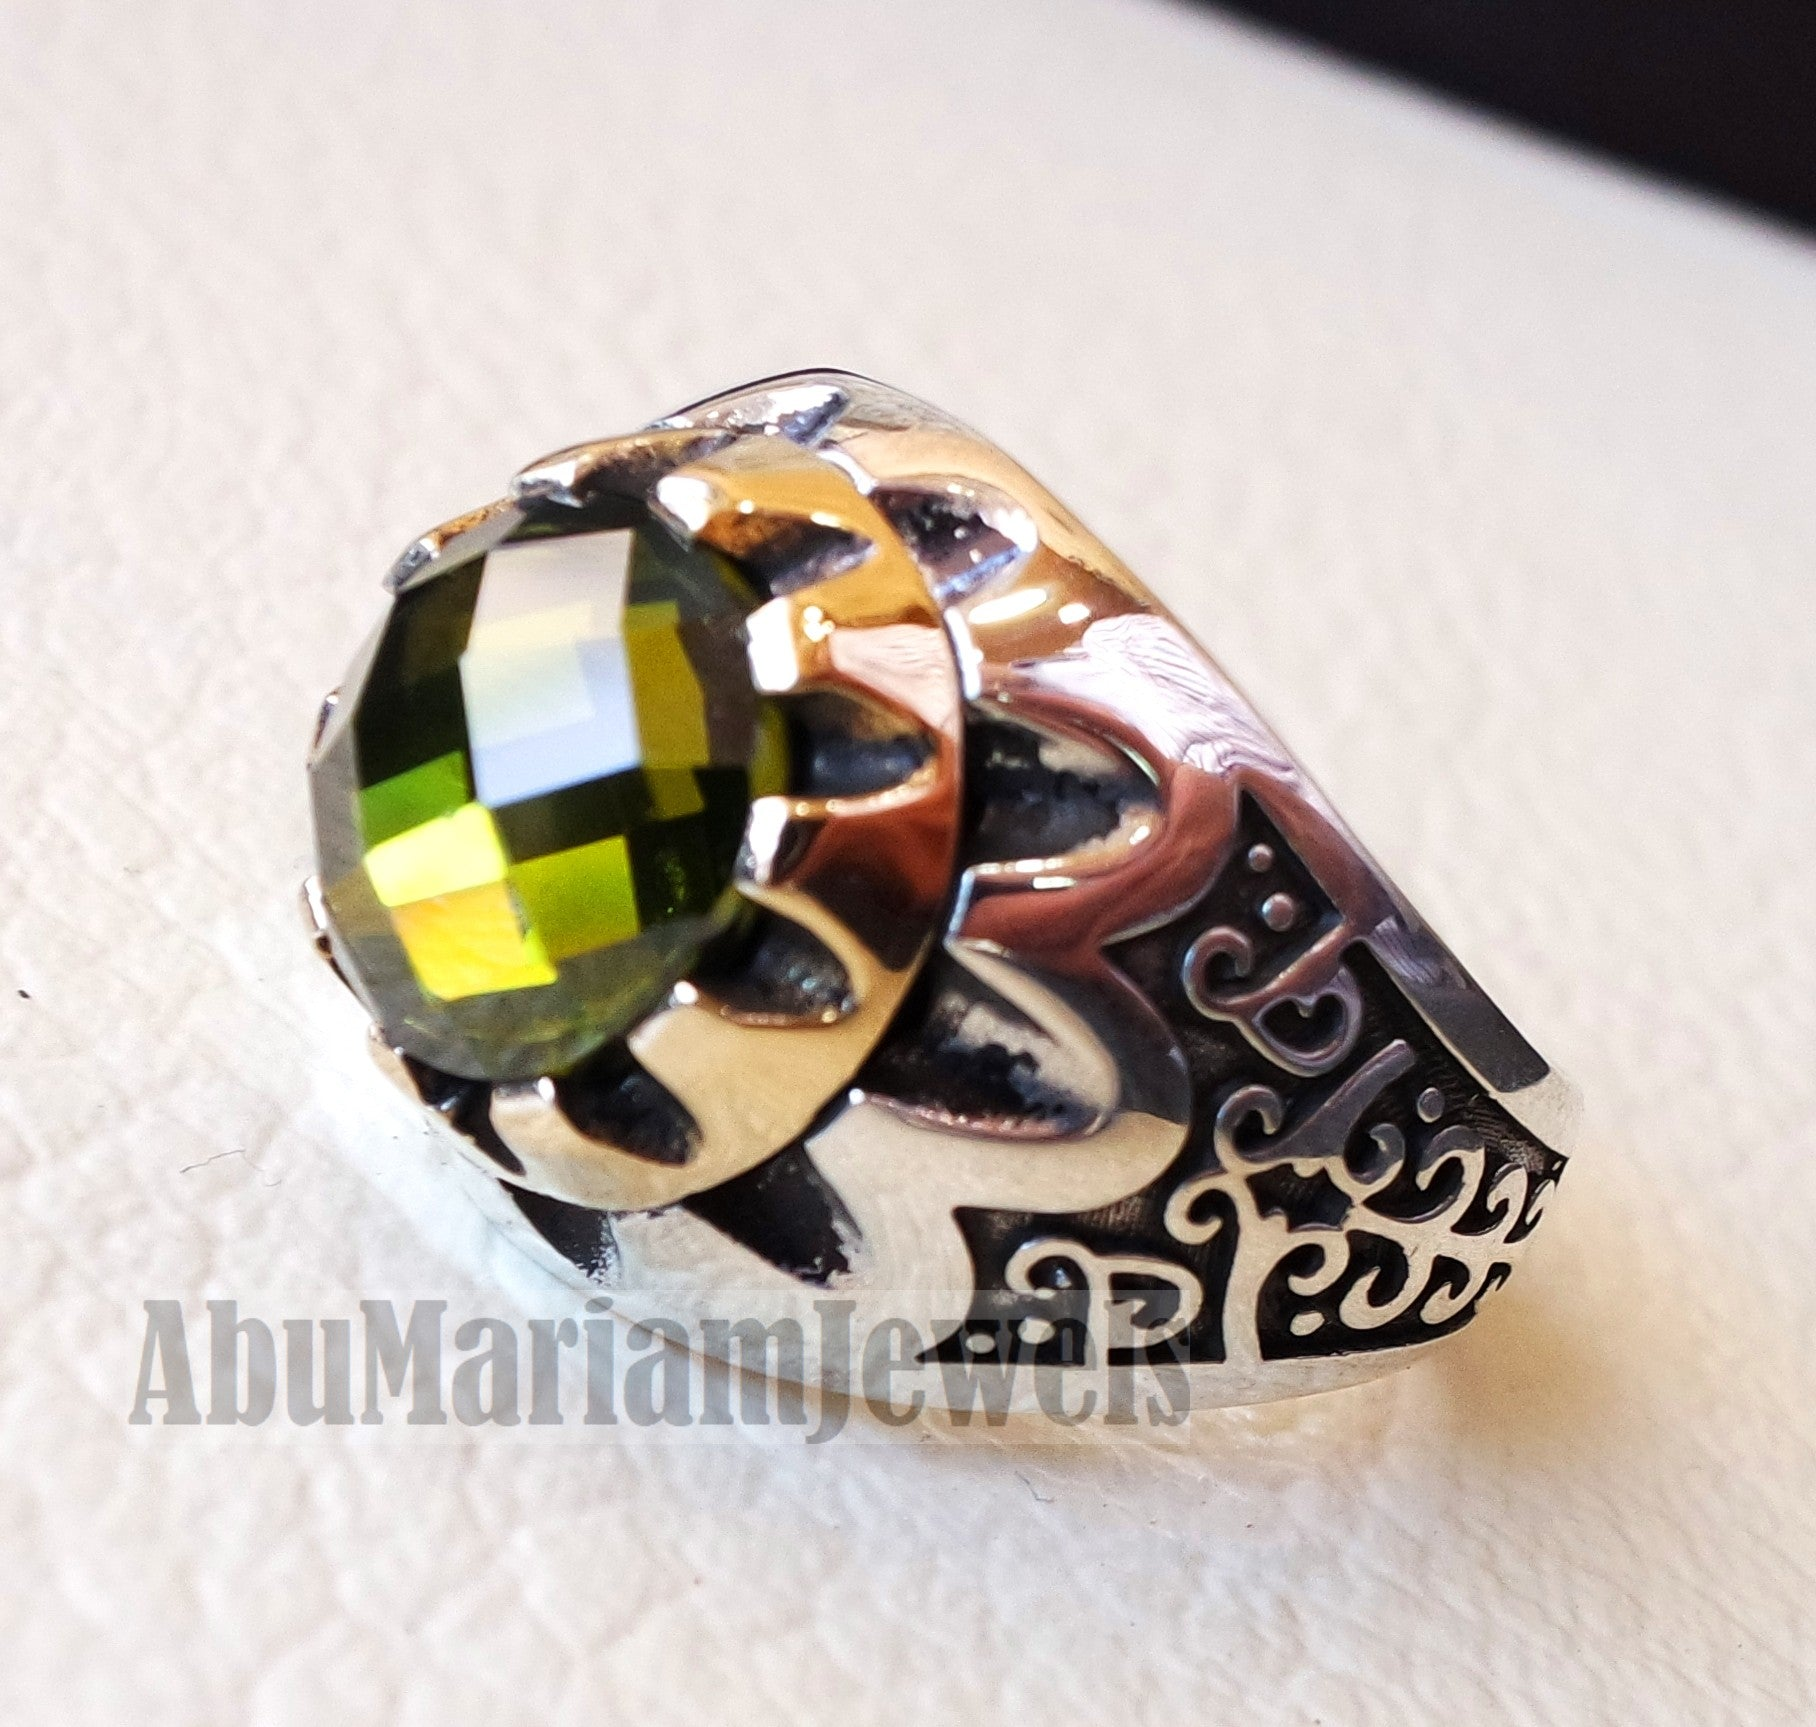 round peridot green cabochon imitation sterling silver 925 men ring all sizes arabic turkish ottoman jewelry bronze frame زبرجد